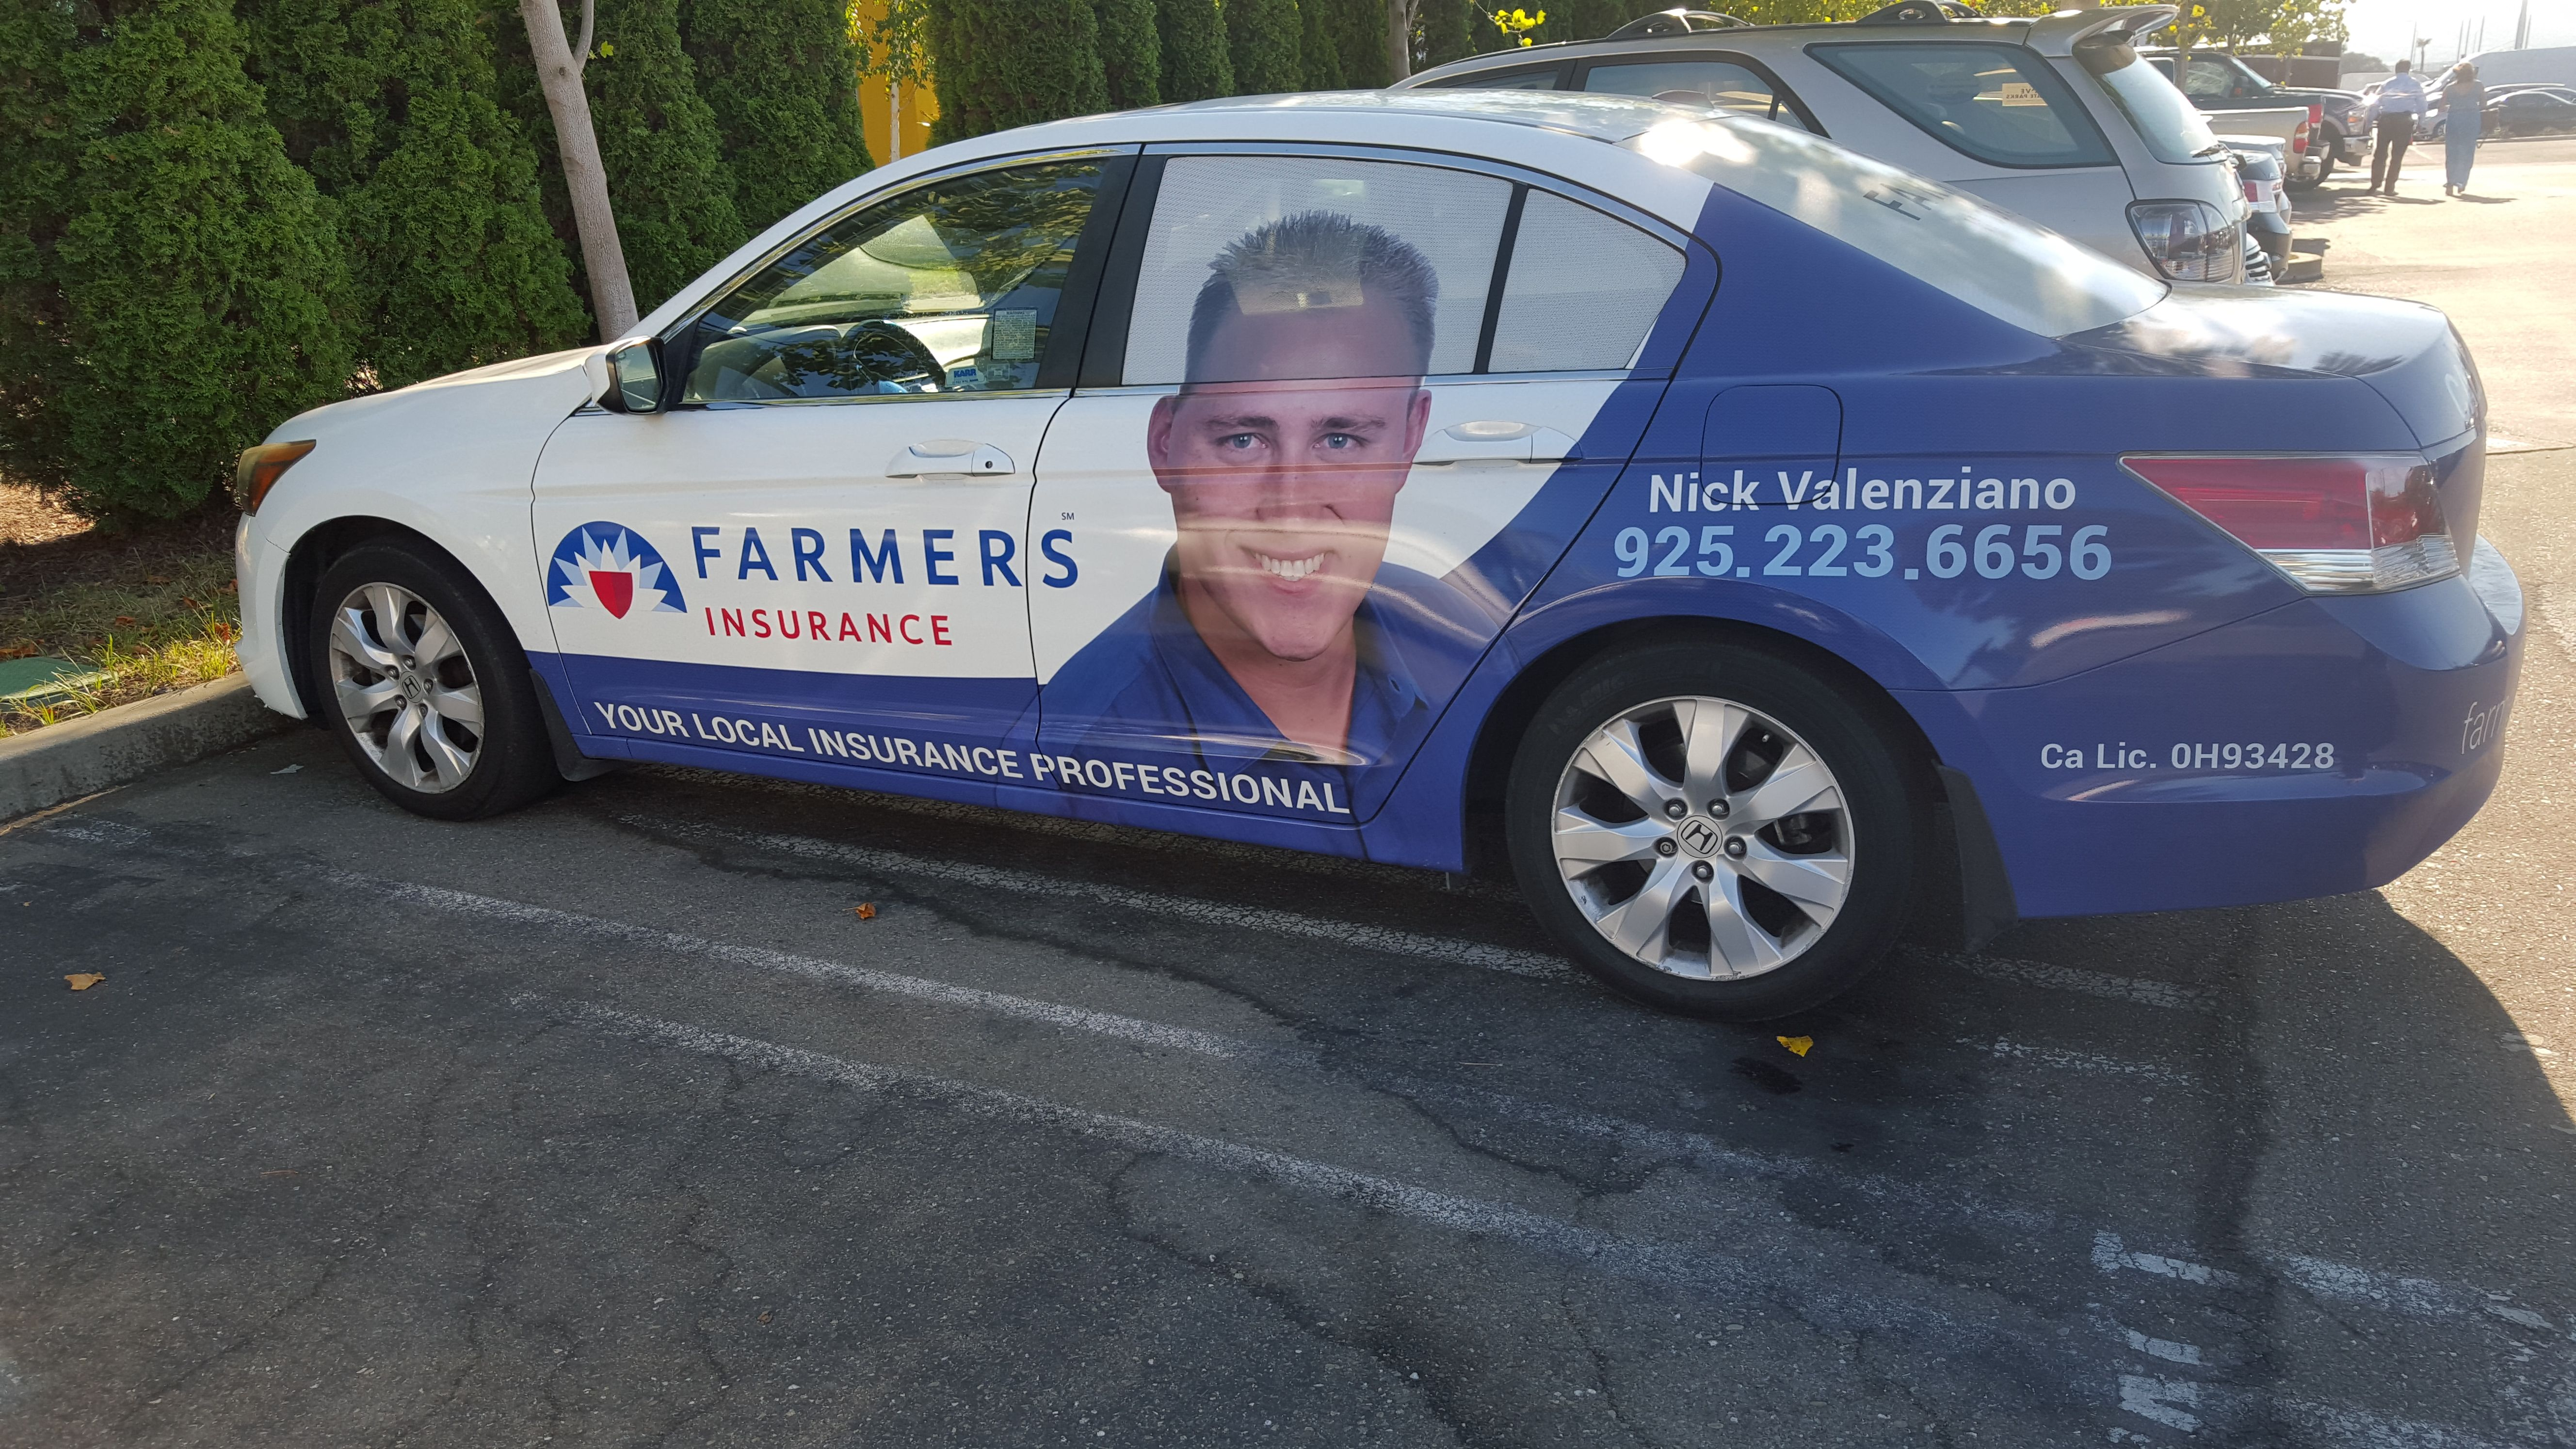 Farmers Insurance Agent Vehicle Wrap Insignia Designs Works With